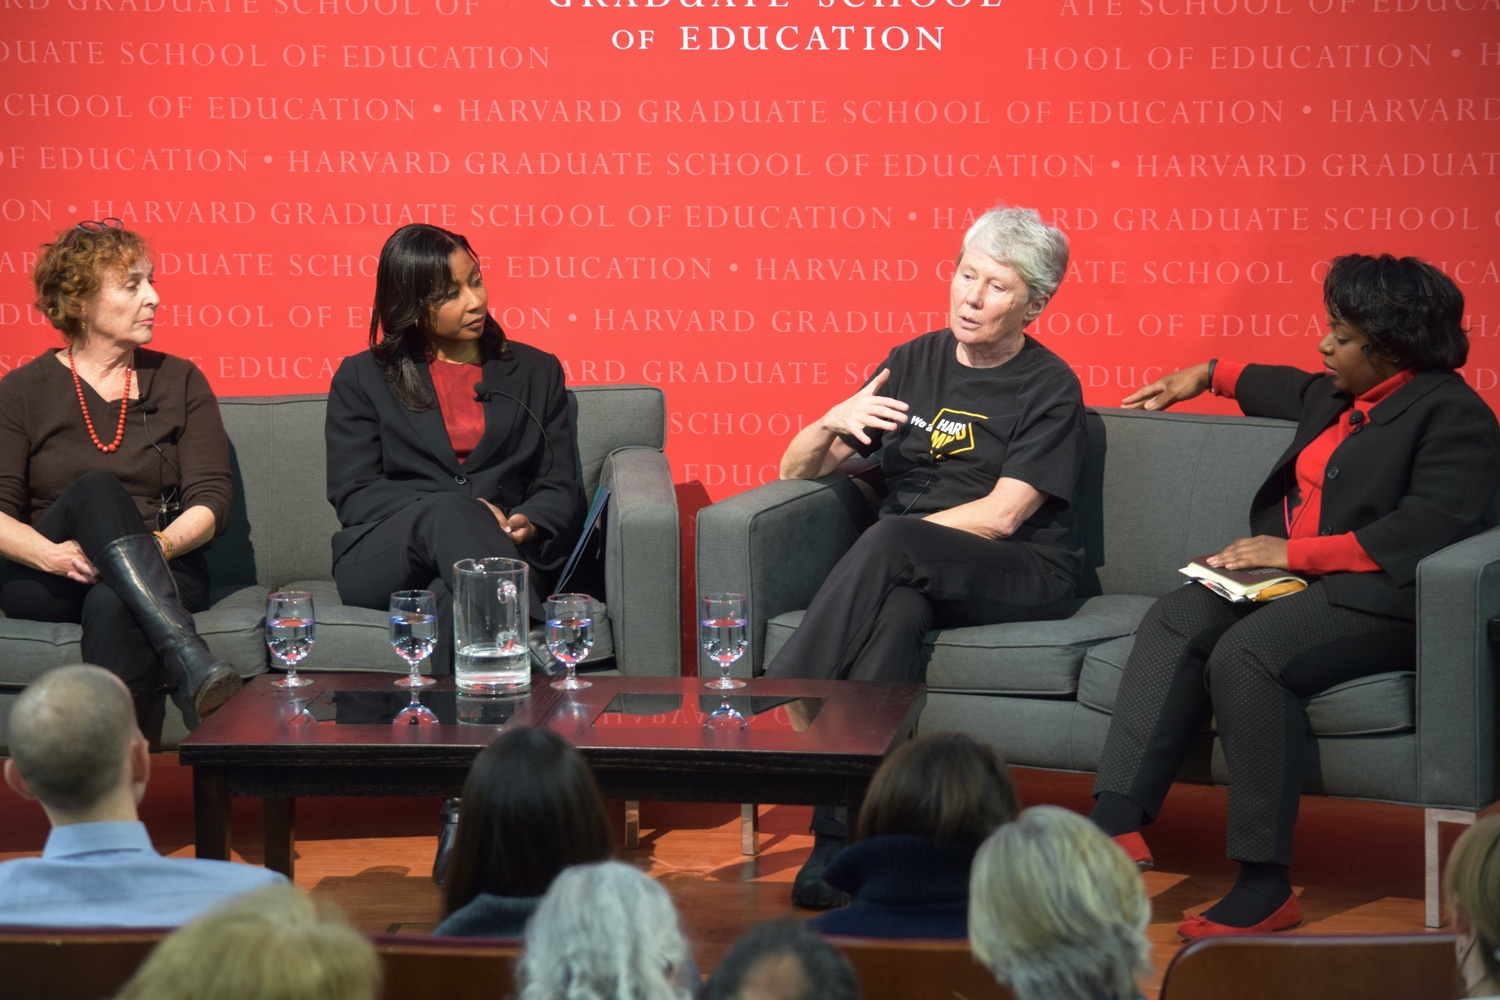 Panelists speak at the Askwith Forum at the Graduate School of Education on Wednesday. The forum discussed female representation in science, technology, engineering, and mathematics fields.